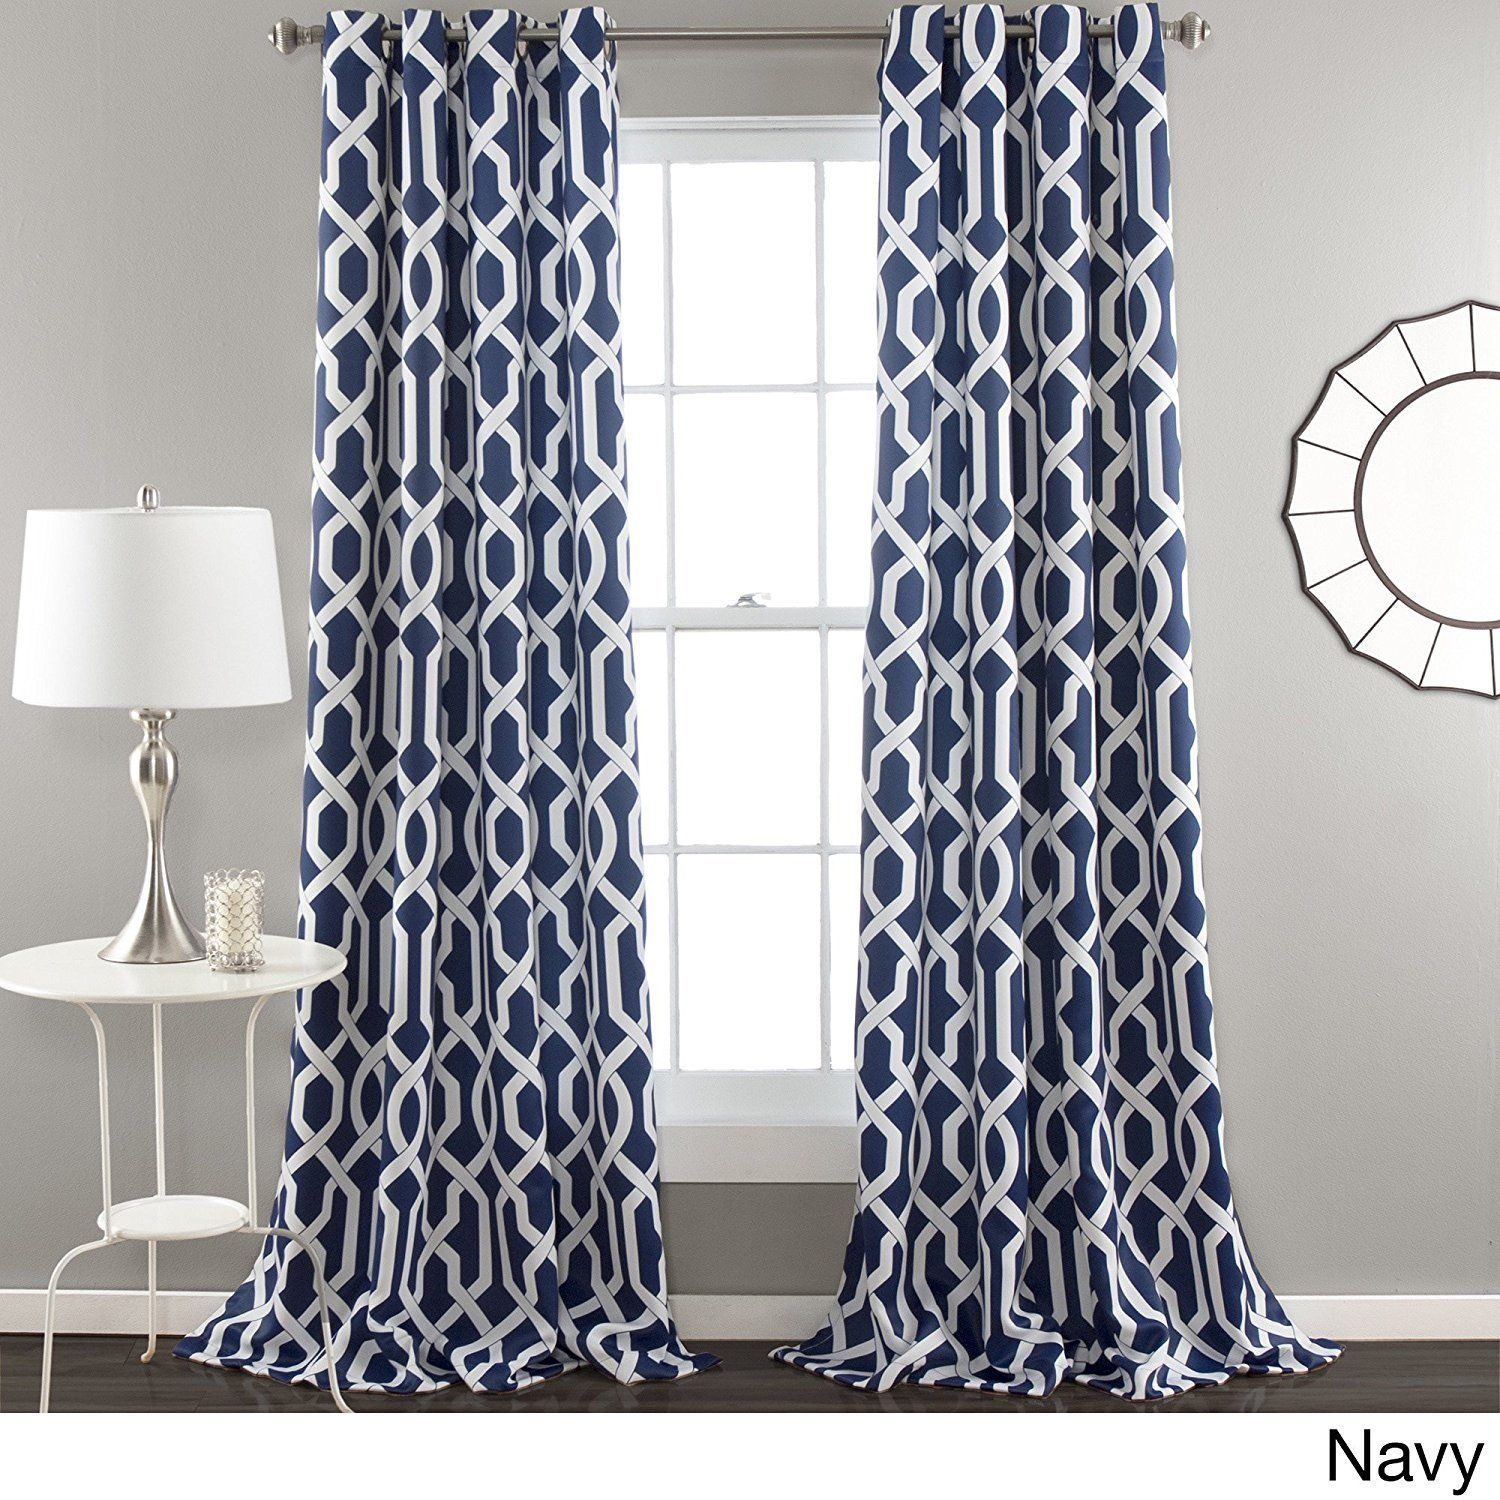 84 Inch Navy Blue White Moroccan Curtains Panel Pair Set Blue